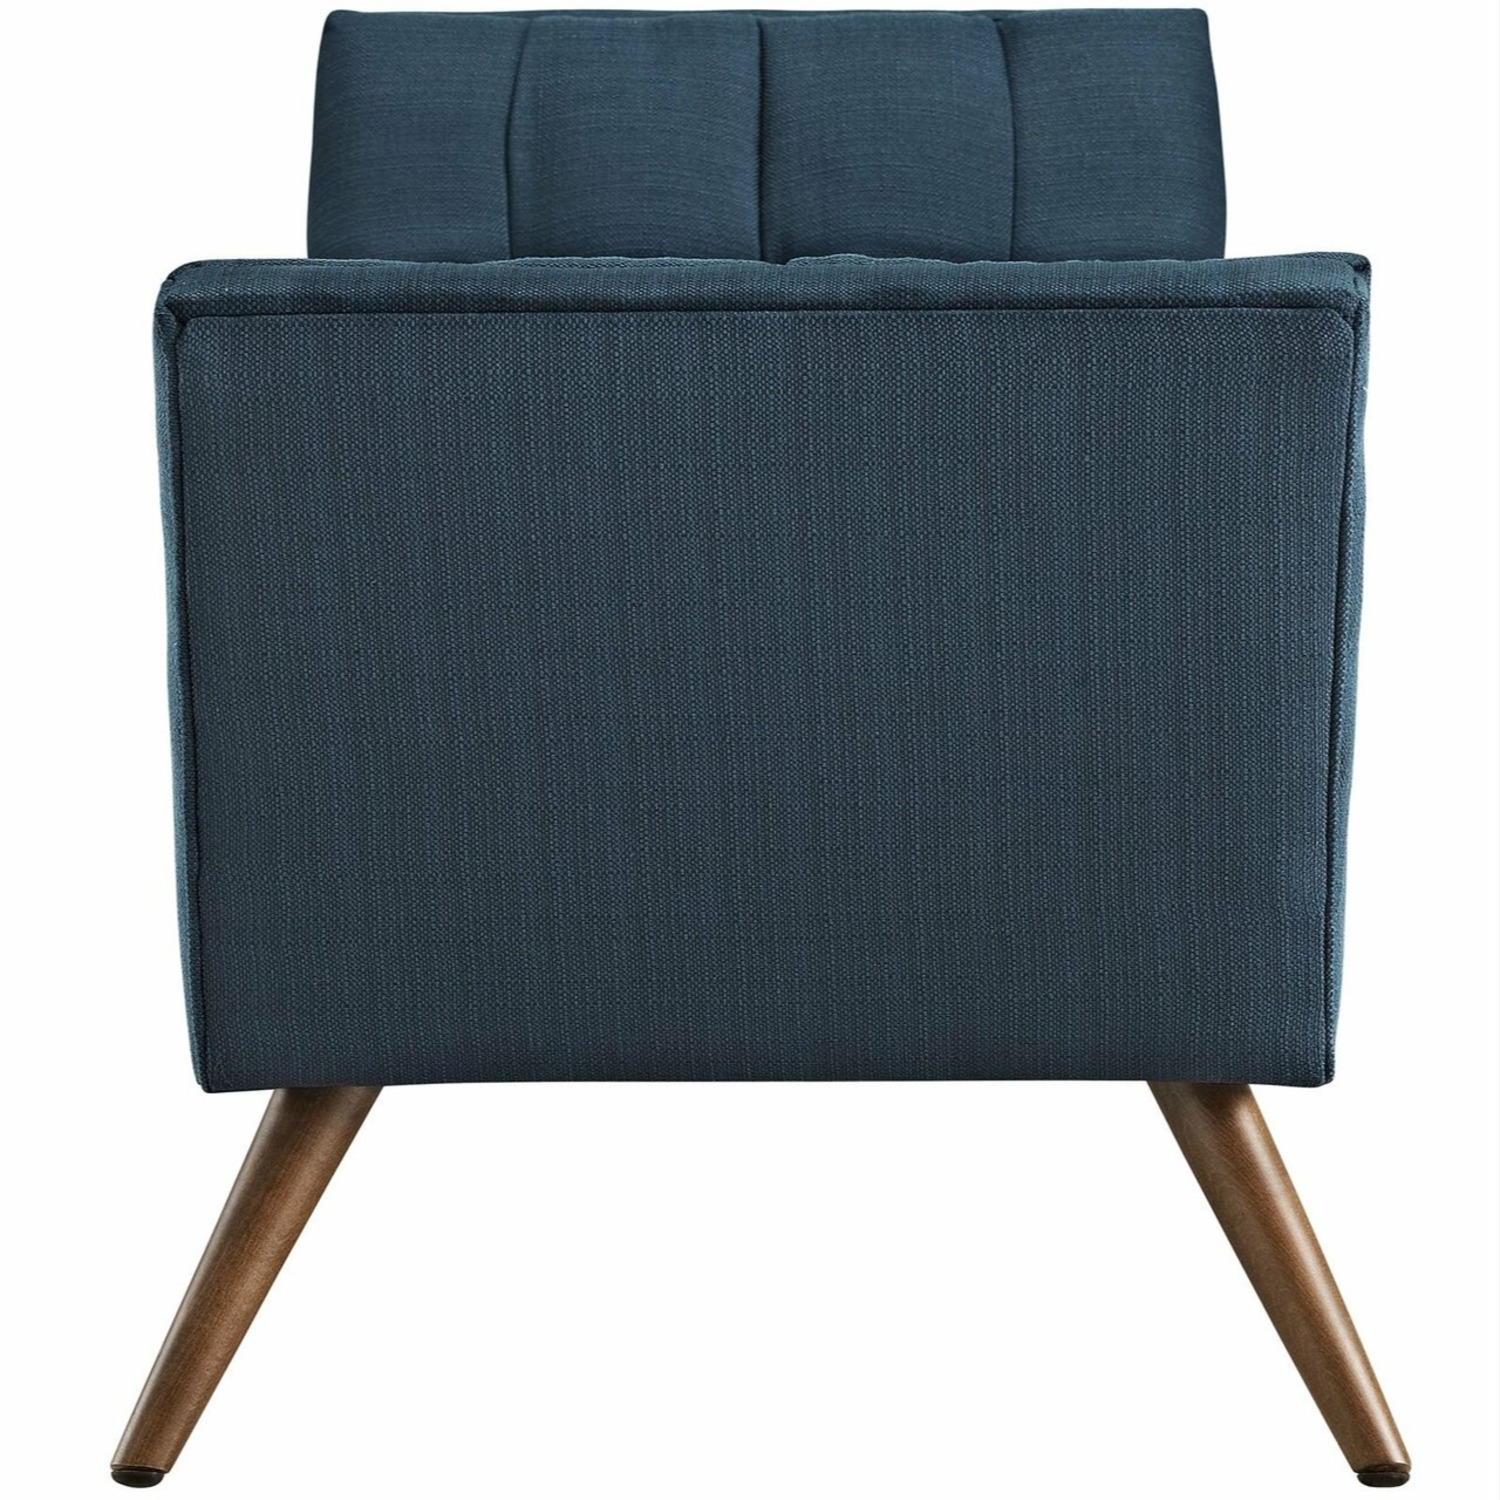 Bench In Tufted Azure Fabric Upholstery Finish - image-3